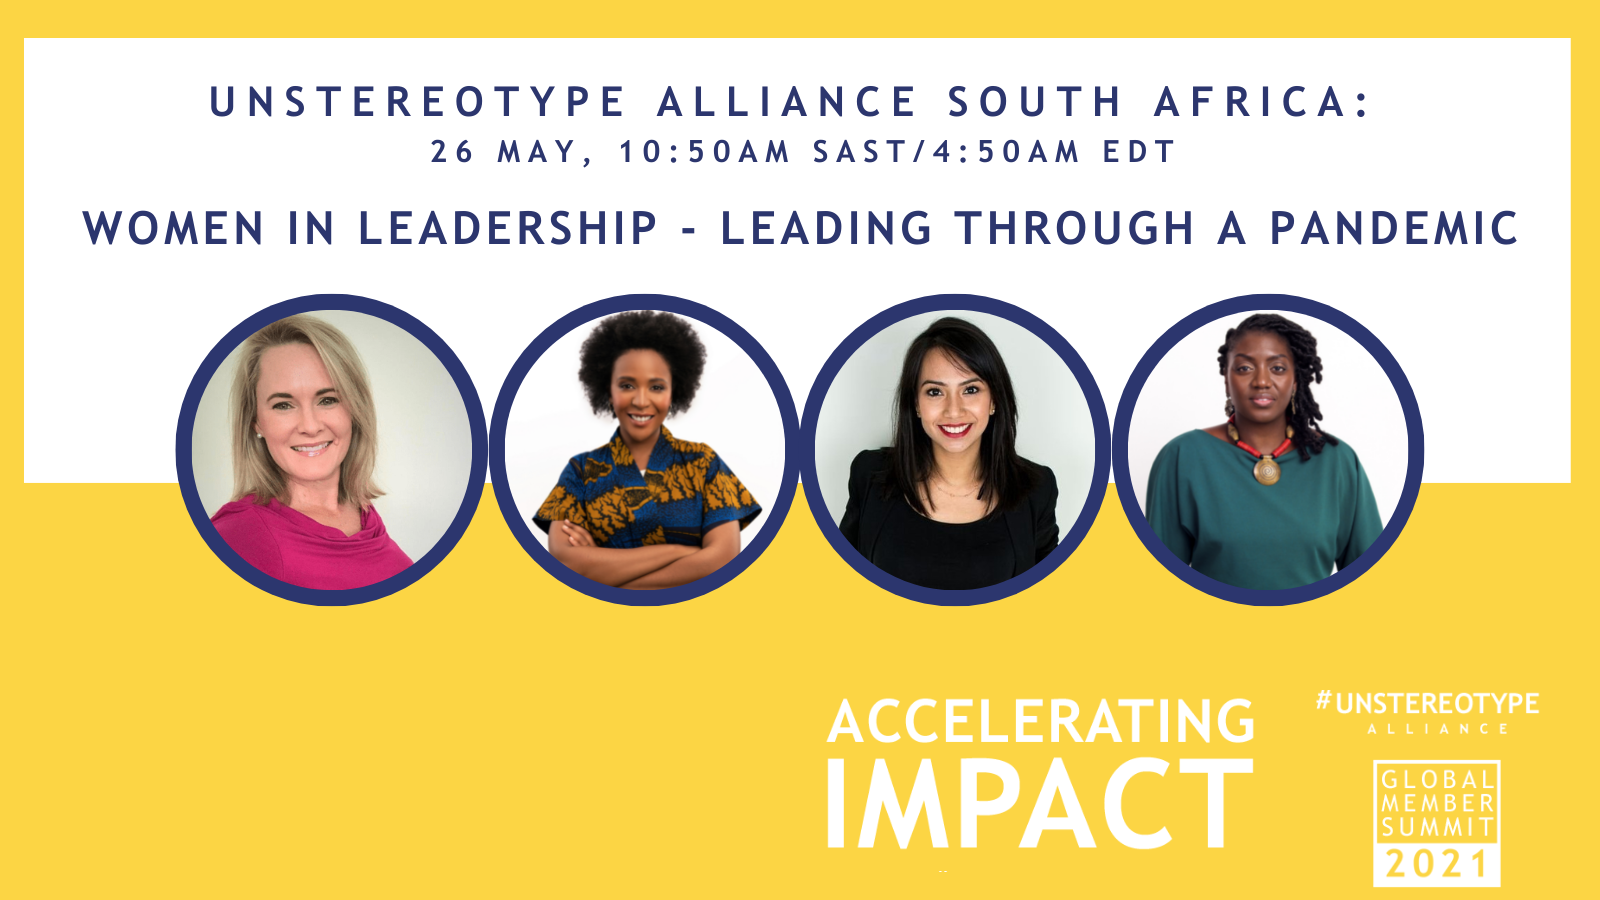 WiM Africa Takes part in Unstereotype Alliance 2021 Global Member Summit